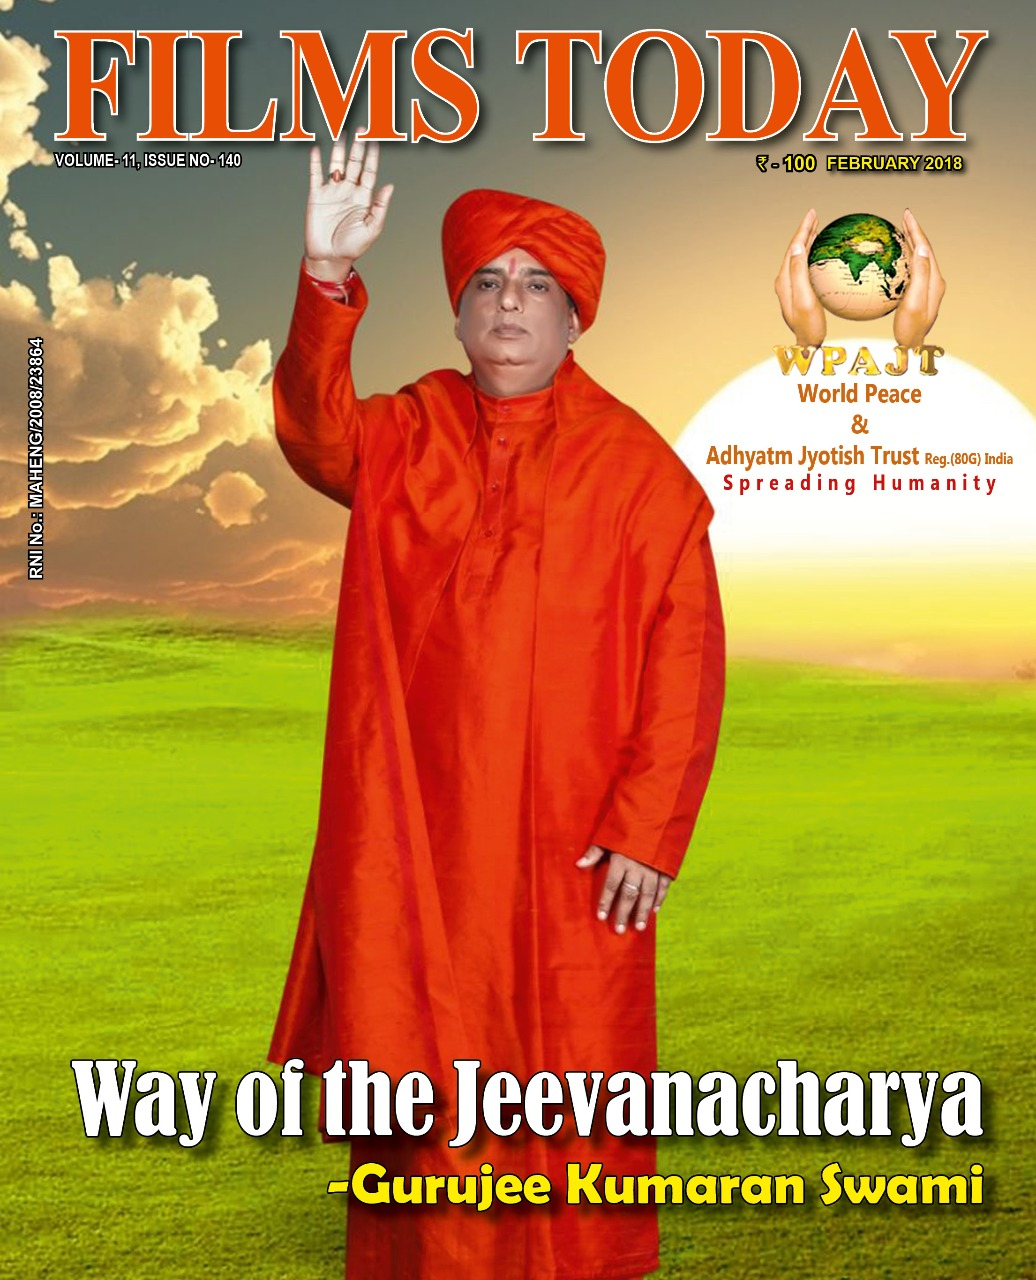 Films Today Book Edition - Way Of Life Jeevanacharya